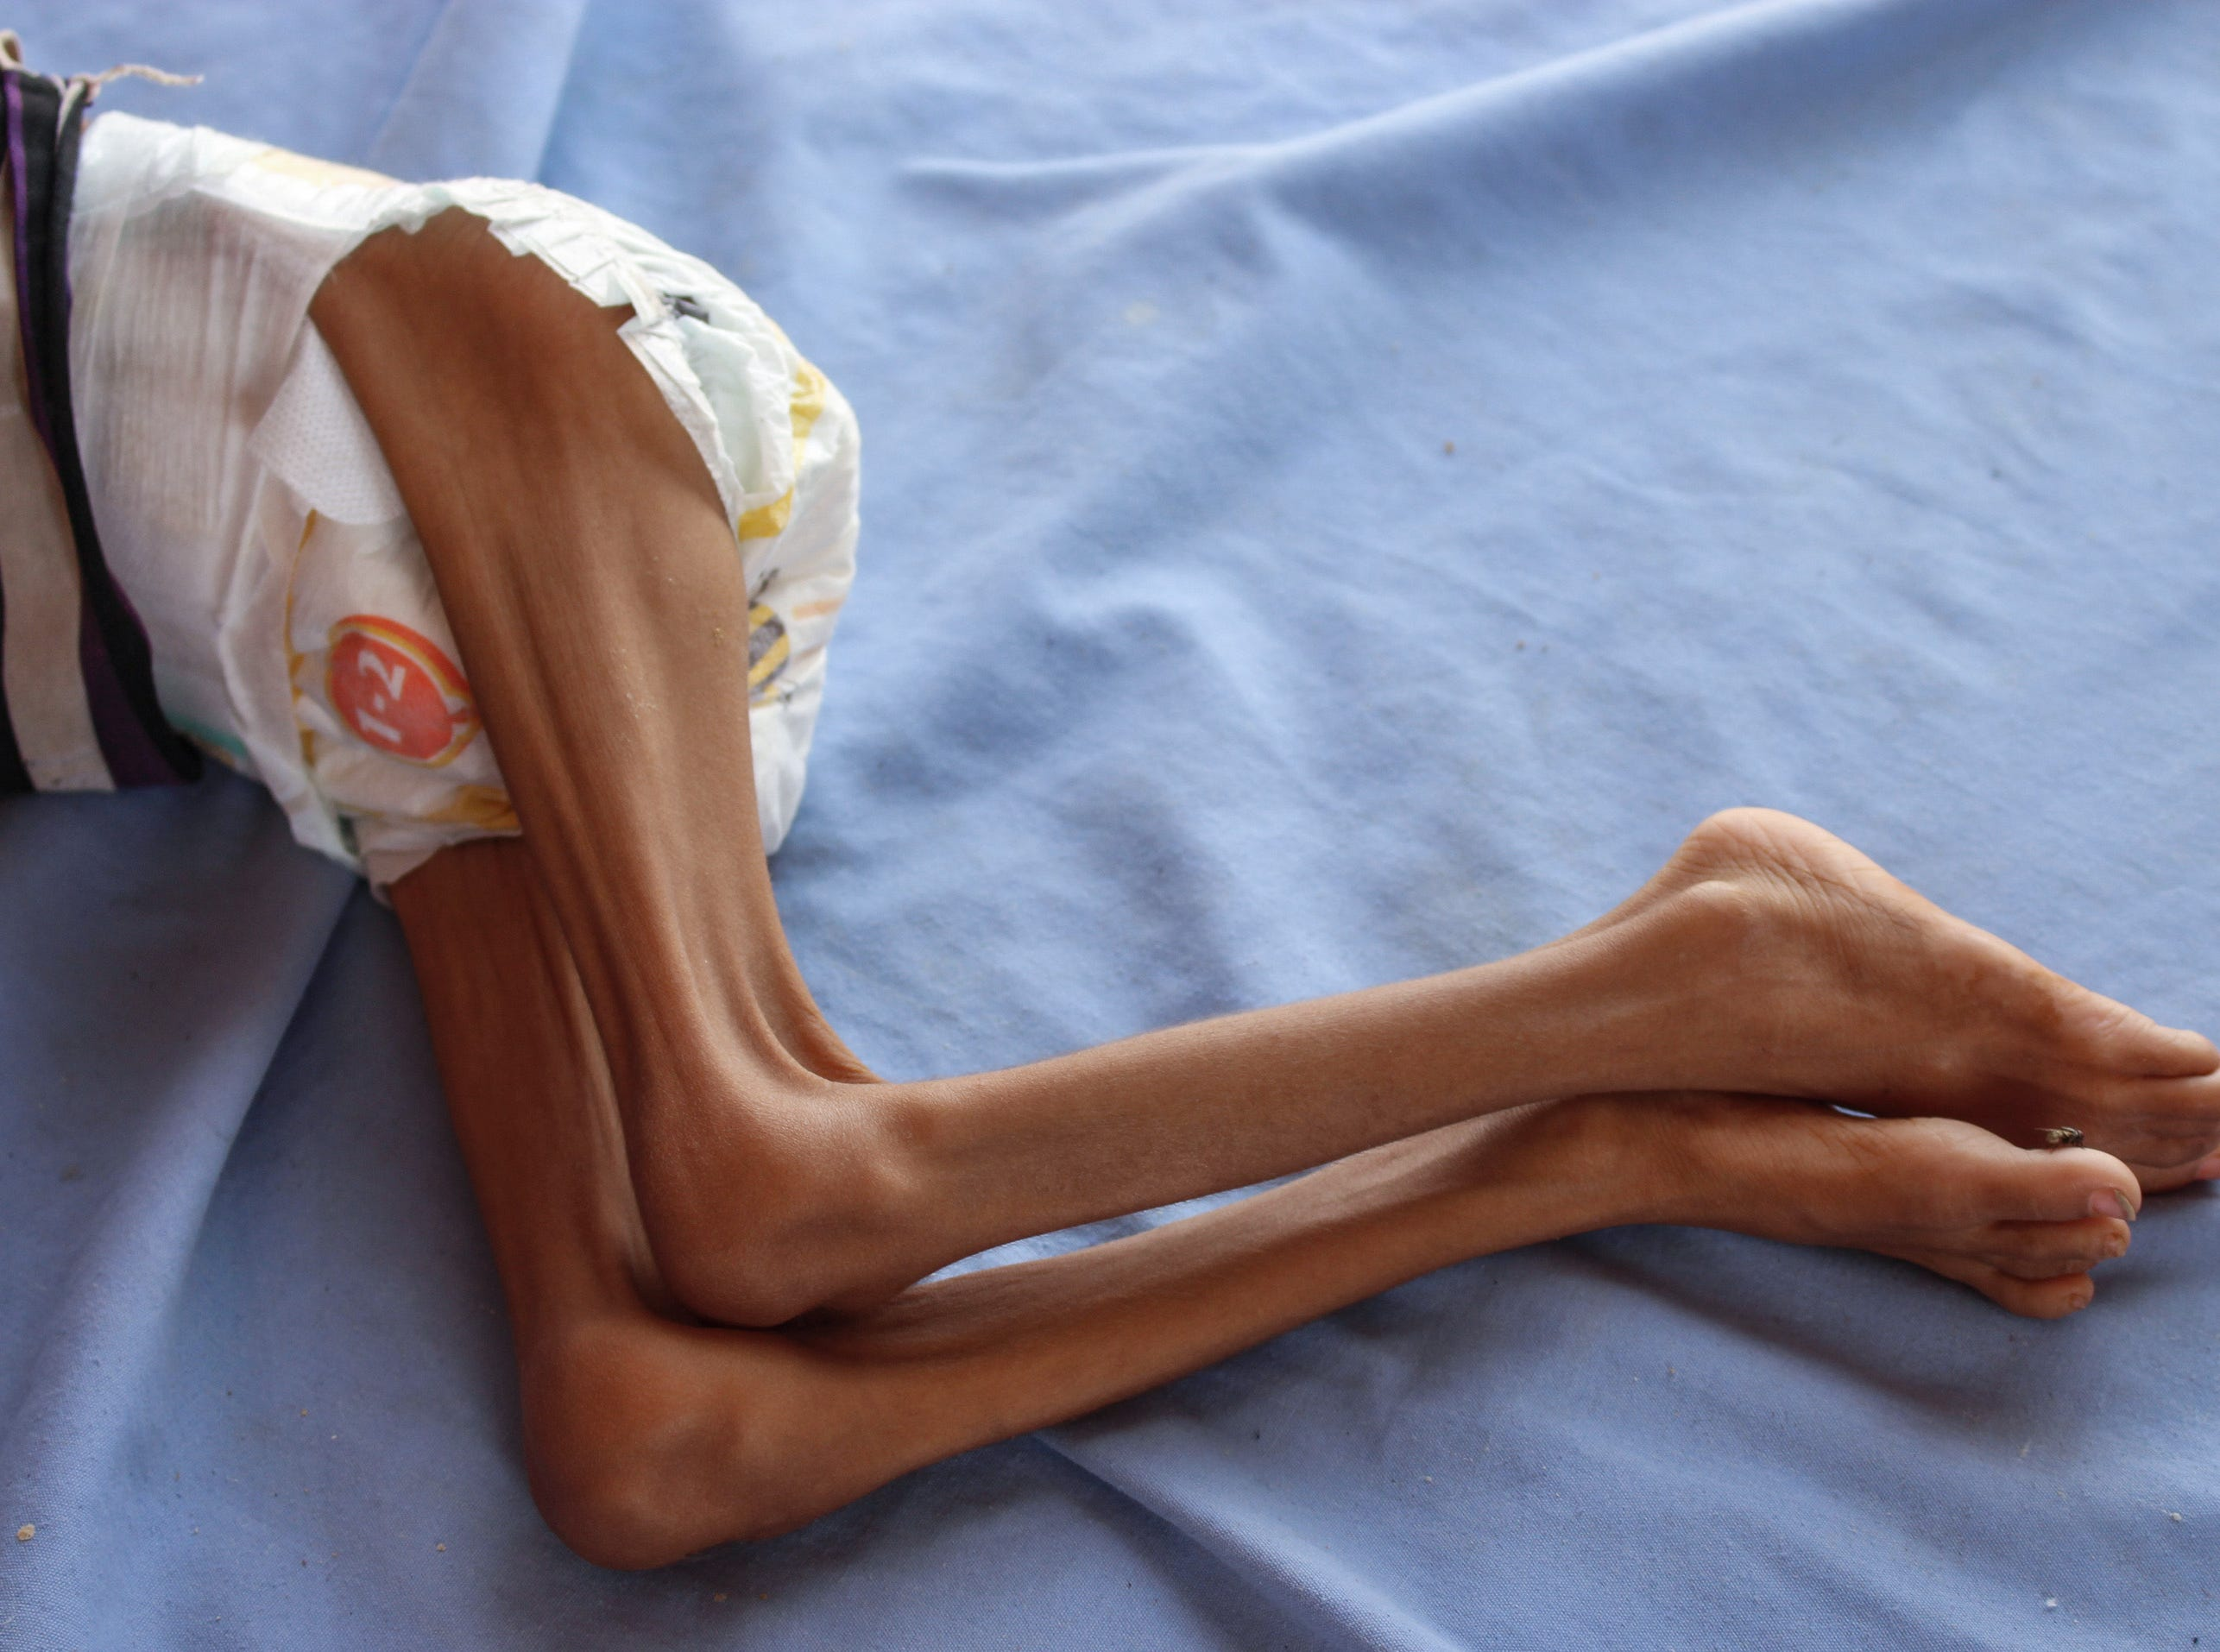 A Yemeni child suffering from malnutrition lies on a bed at a hospital in the northern district of Abs in the northwestern Hajjah province on Sept. 19, 2018. - The three-year conflict between Yemen's Saudi-backed government and Huthi rebels linked to Iran has pushed the already impoverished country to the brink of famine, leaving many unable to afford food and water, with a total of 5.2 million children at risk of starvation according to the Britain-based NGO Save the Children.